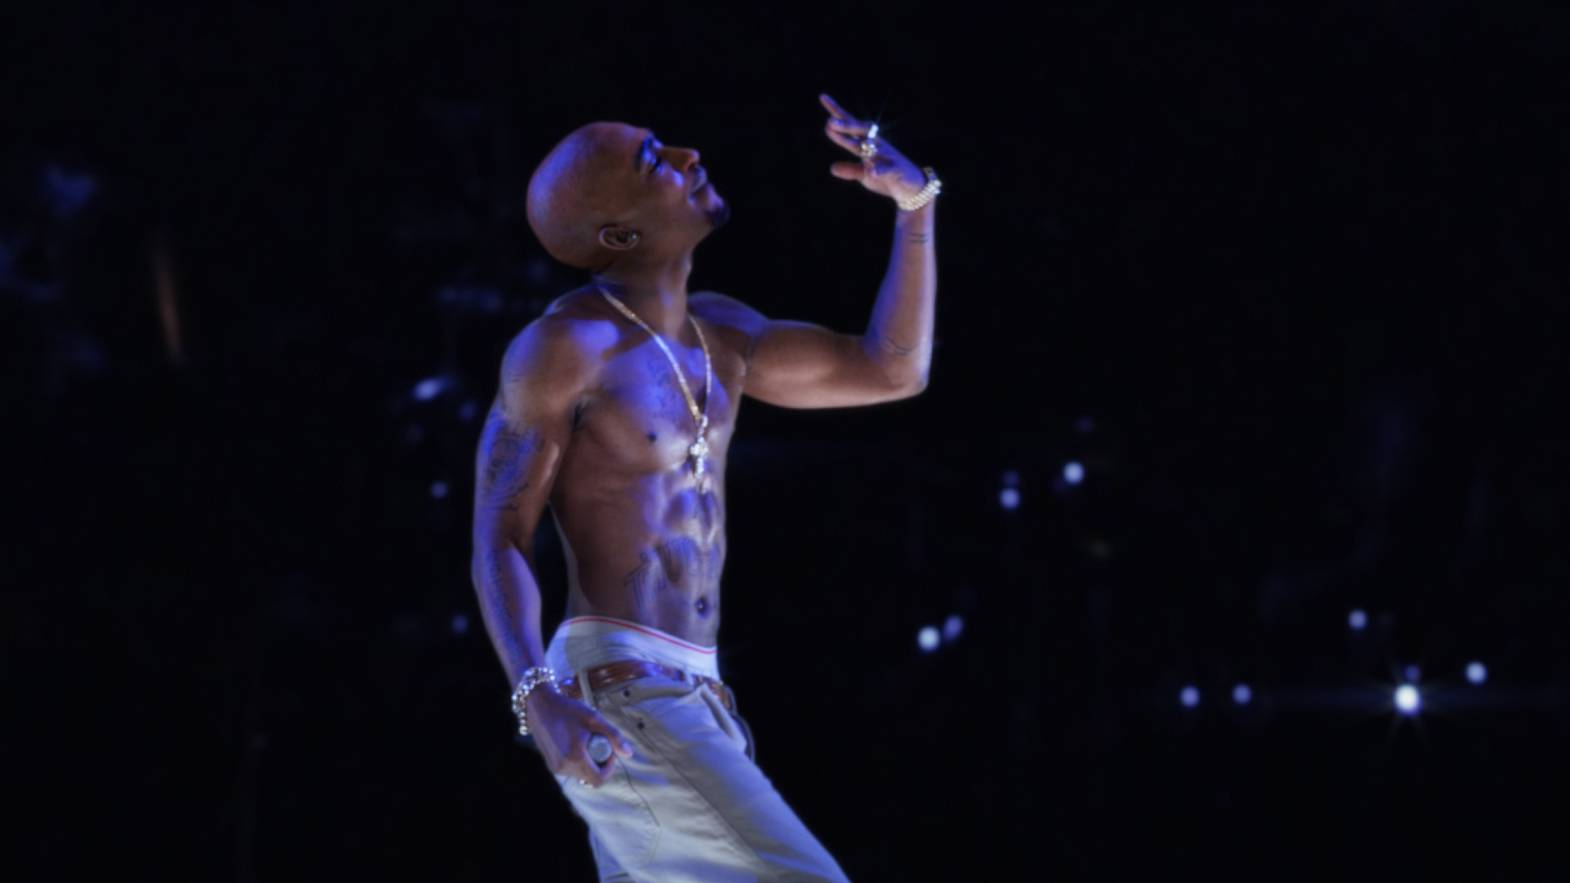 Holograms Entertainment Tupac Shakur Header Image